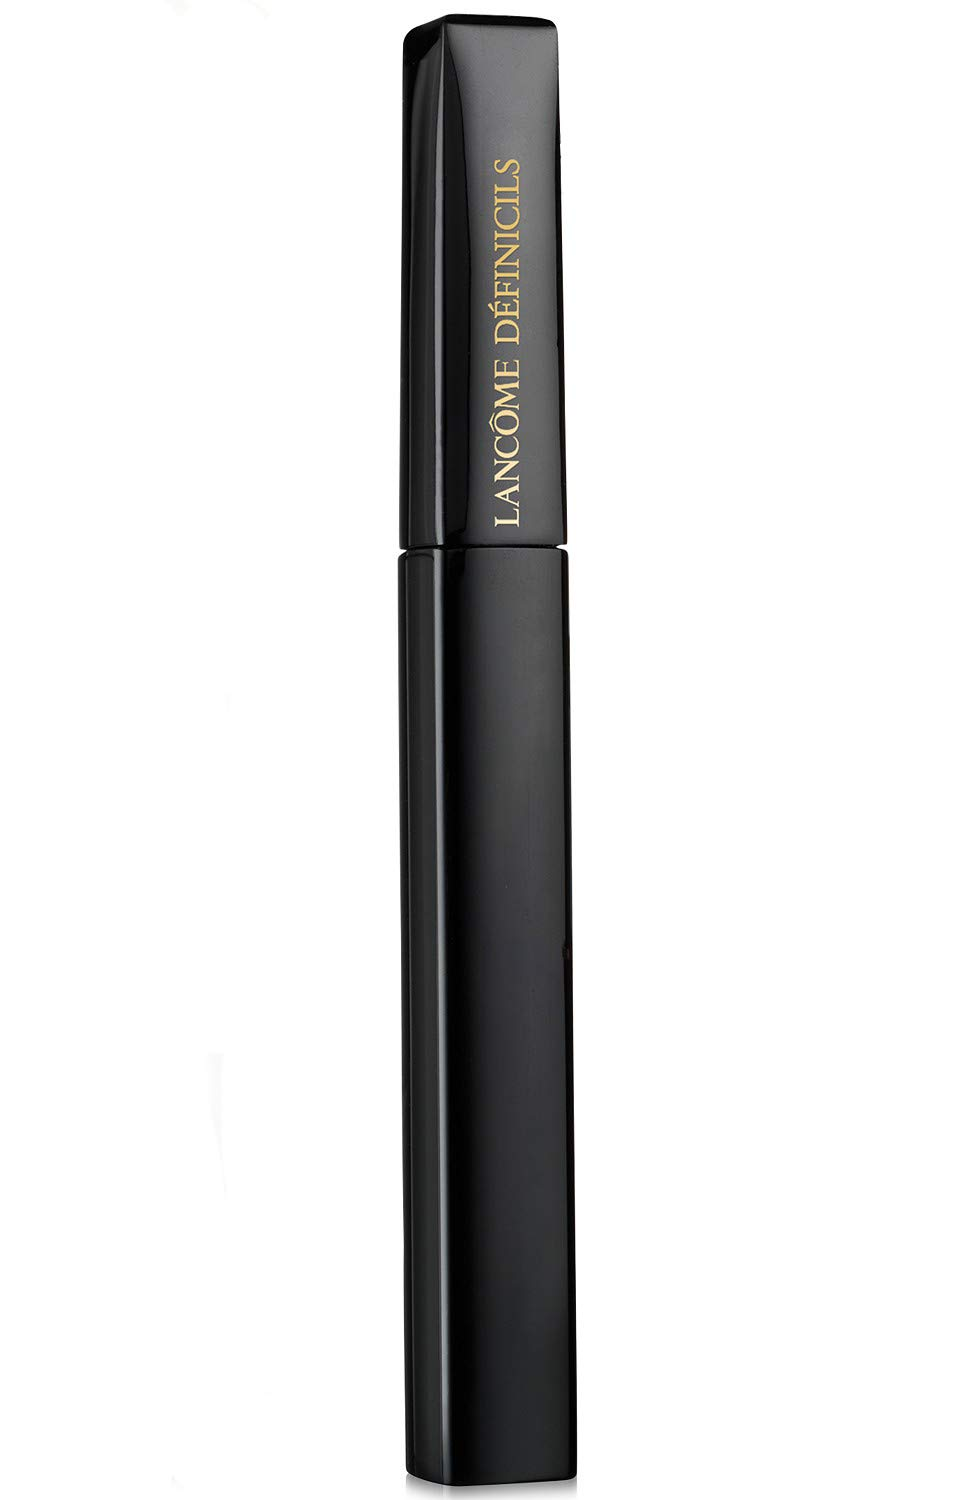 Lancome Definicils High Definition Mascara, 04 Deep Brown, 0.21 Ounce